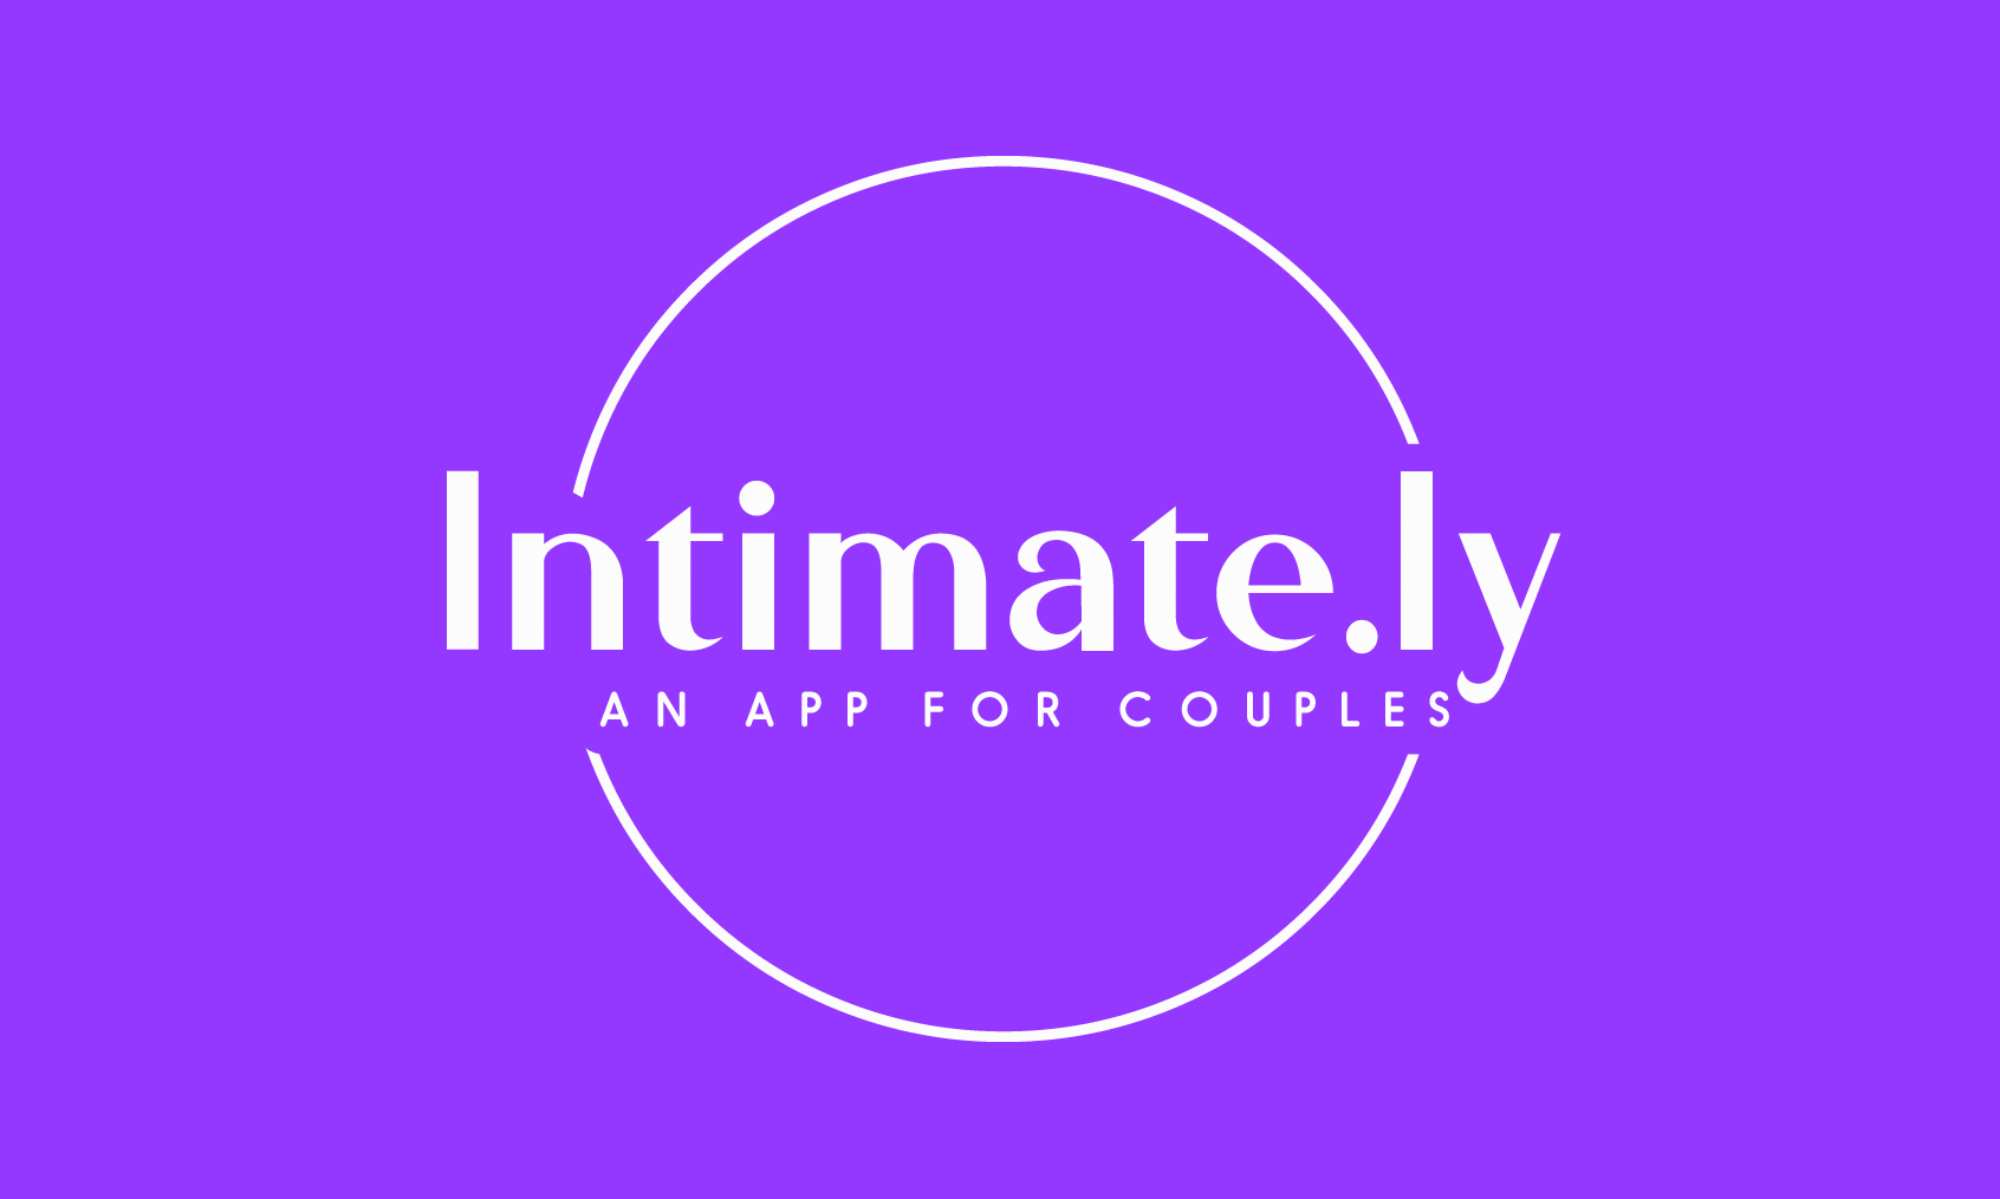 Intimate.ly